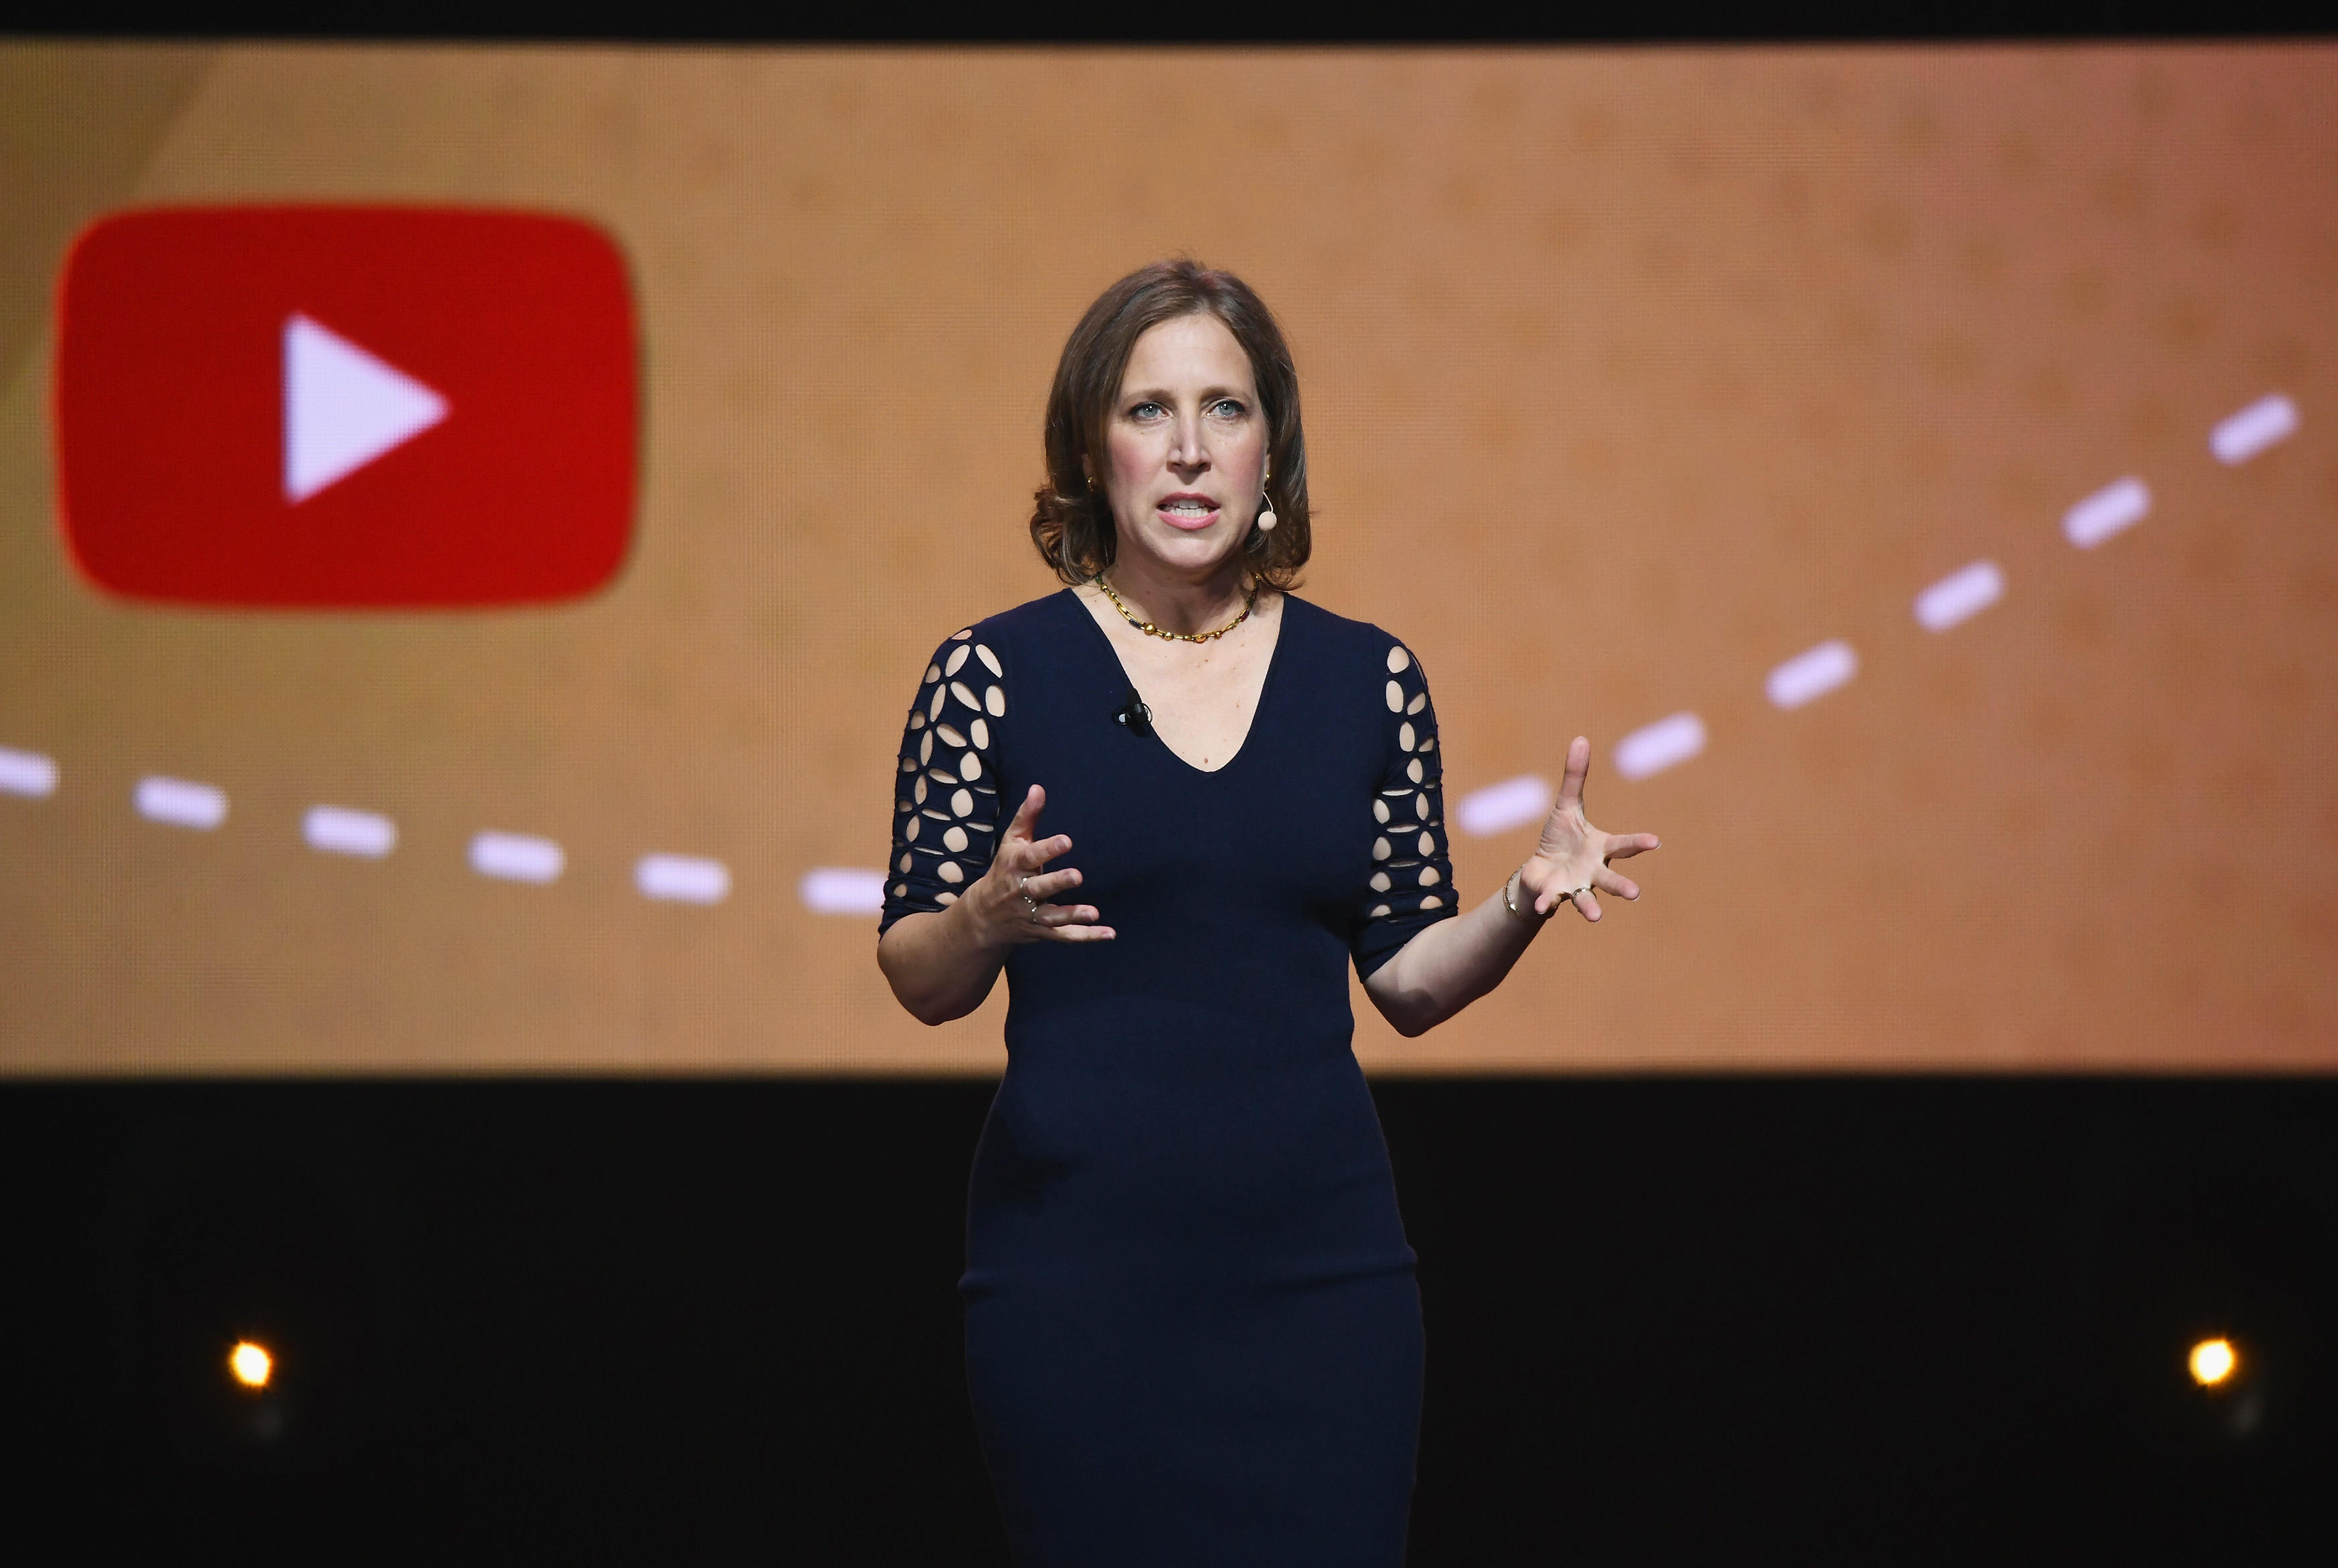 YouTube CEO Susan Wojcicky gestures on stage with the YouTube logo behind her